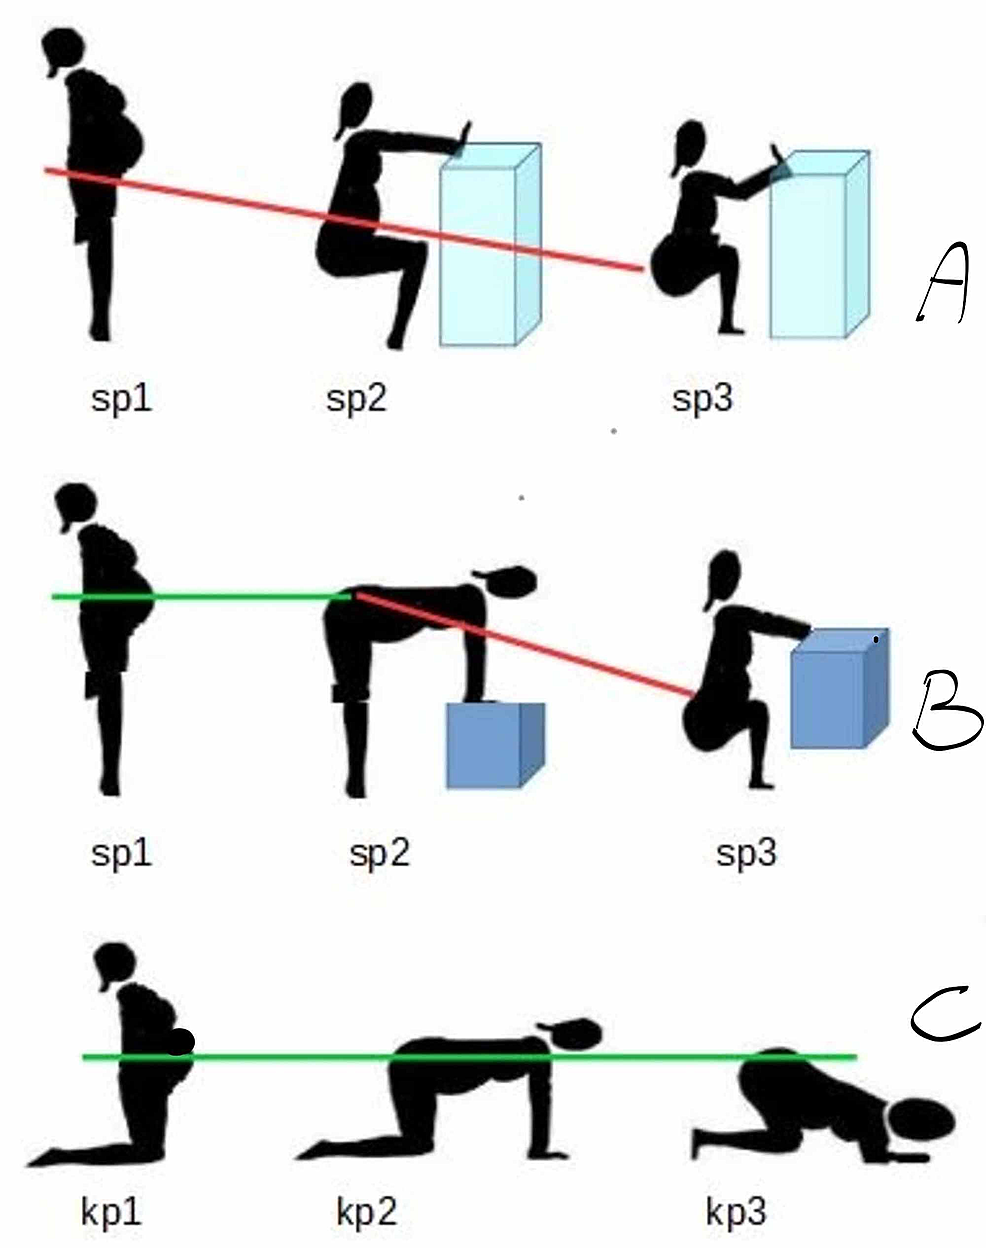 Postural-methods-of-shifting-positions.